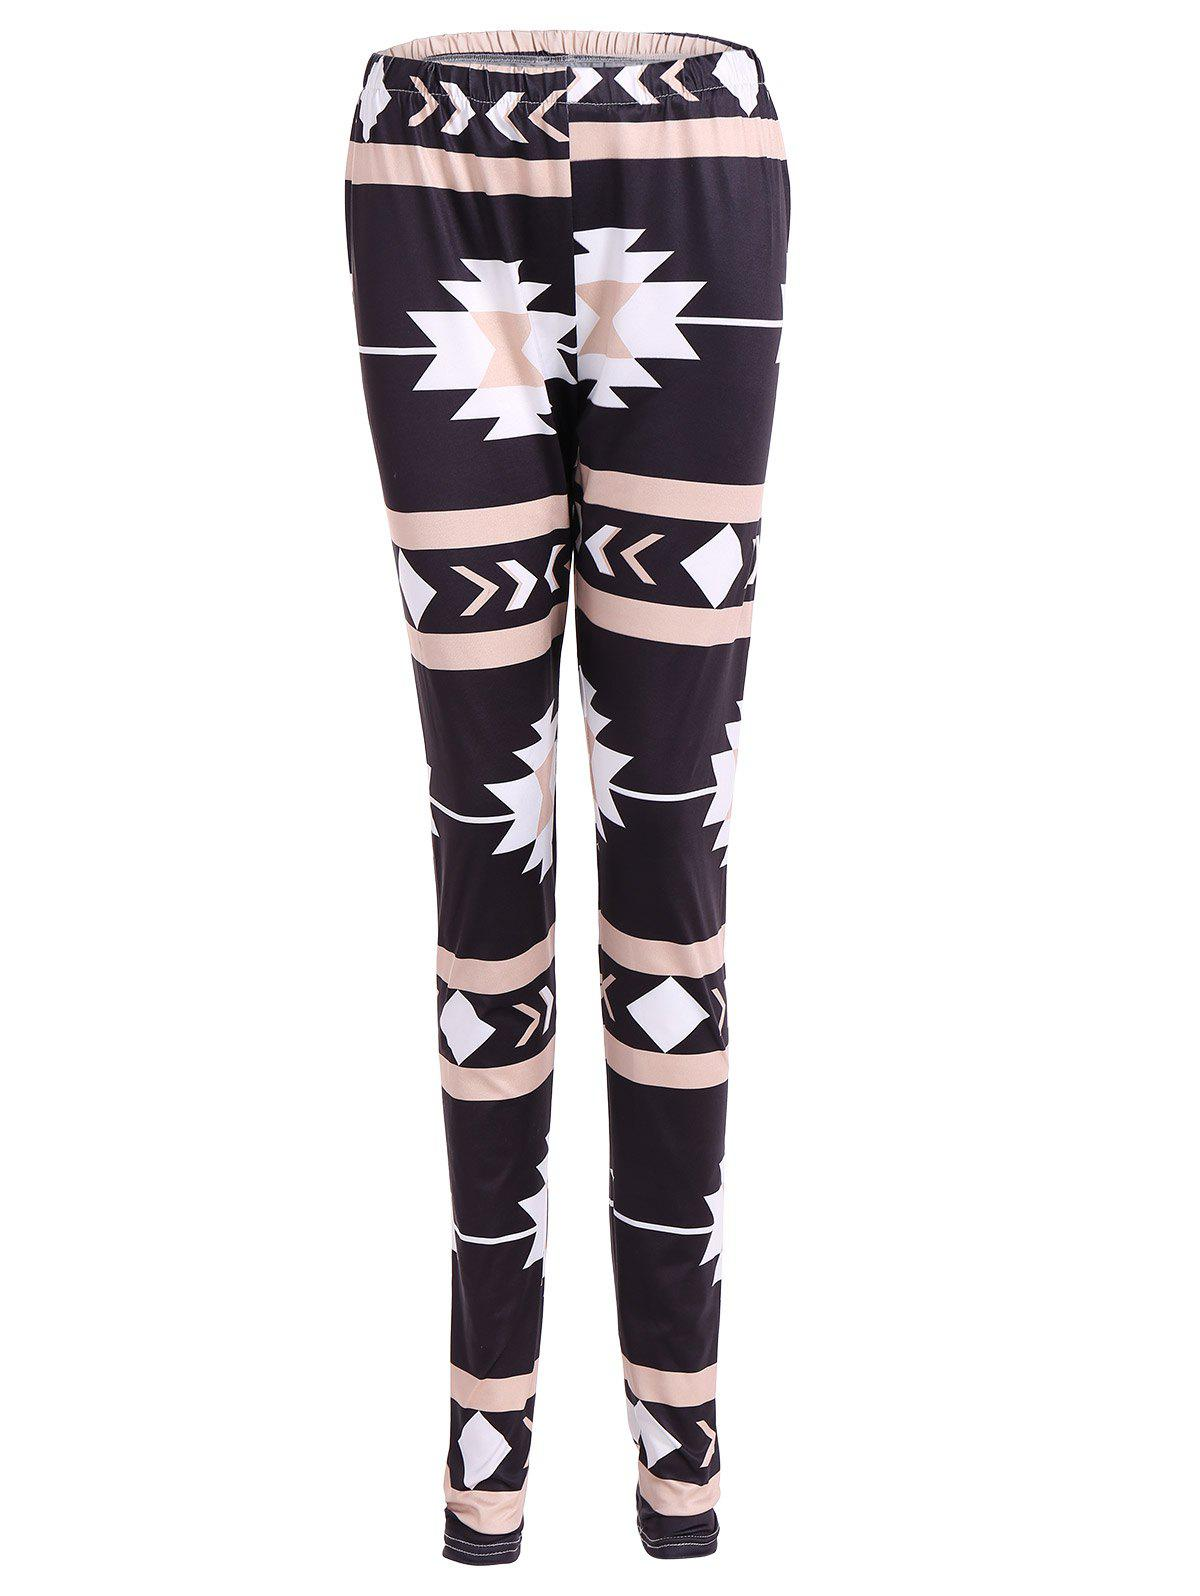 Discount Geometric Christmas Skinny Leggings